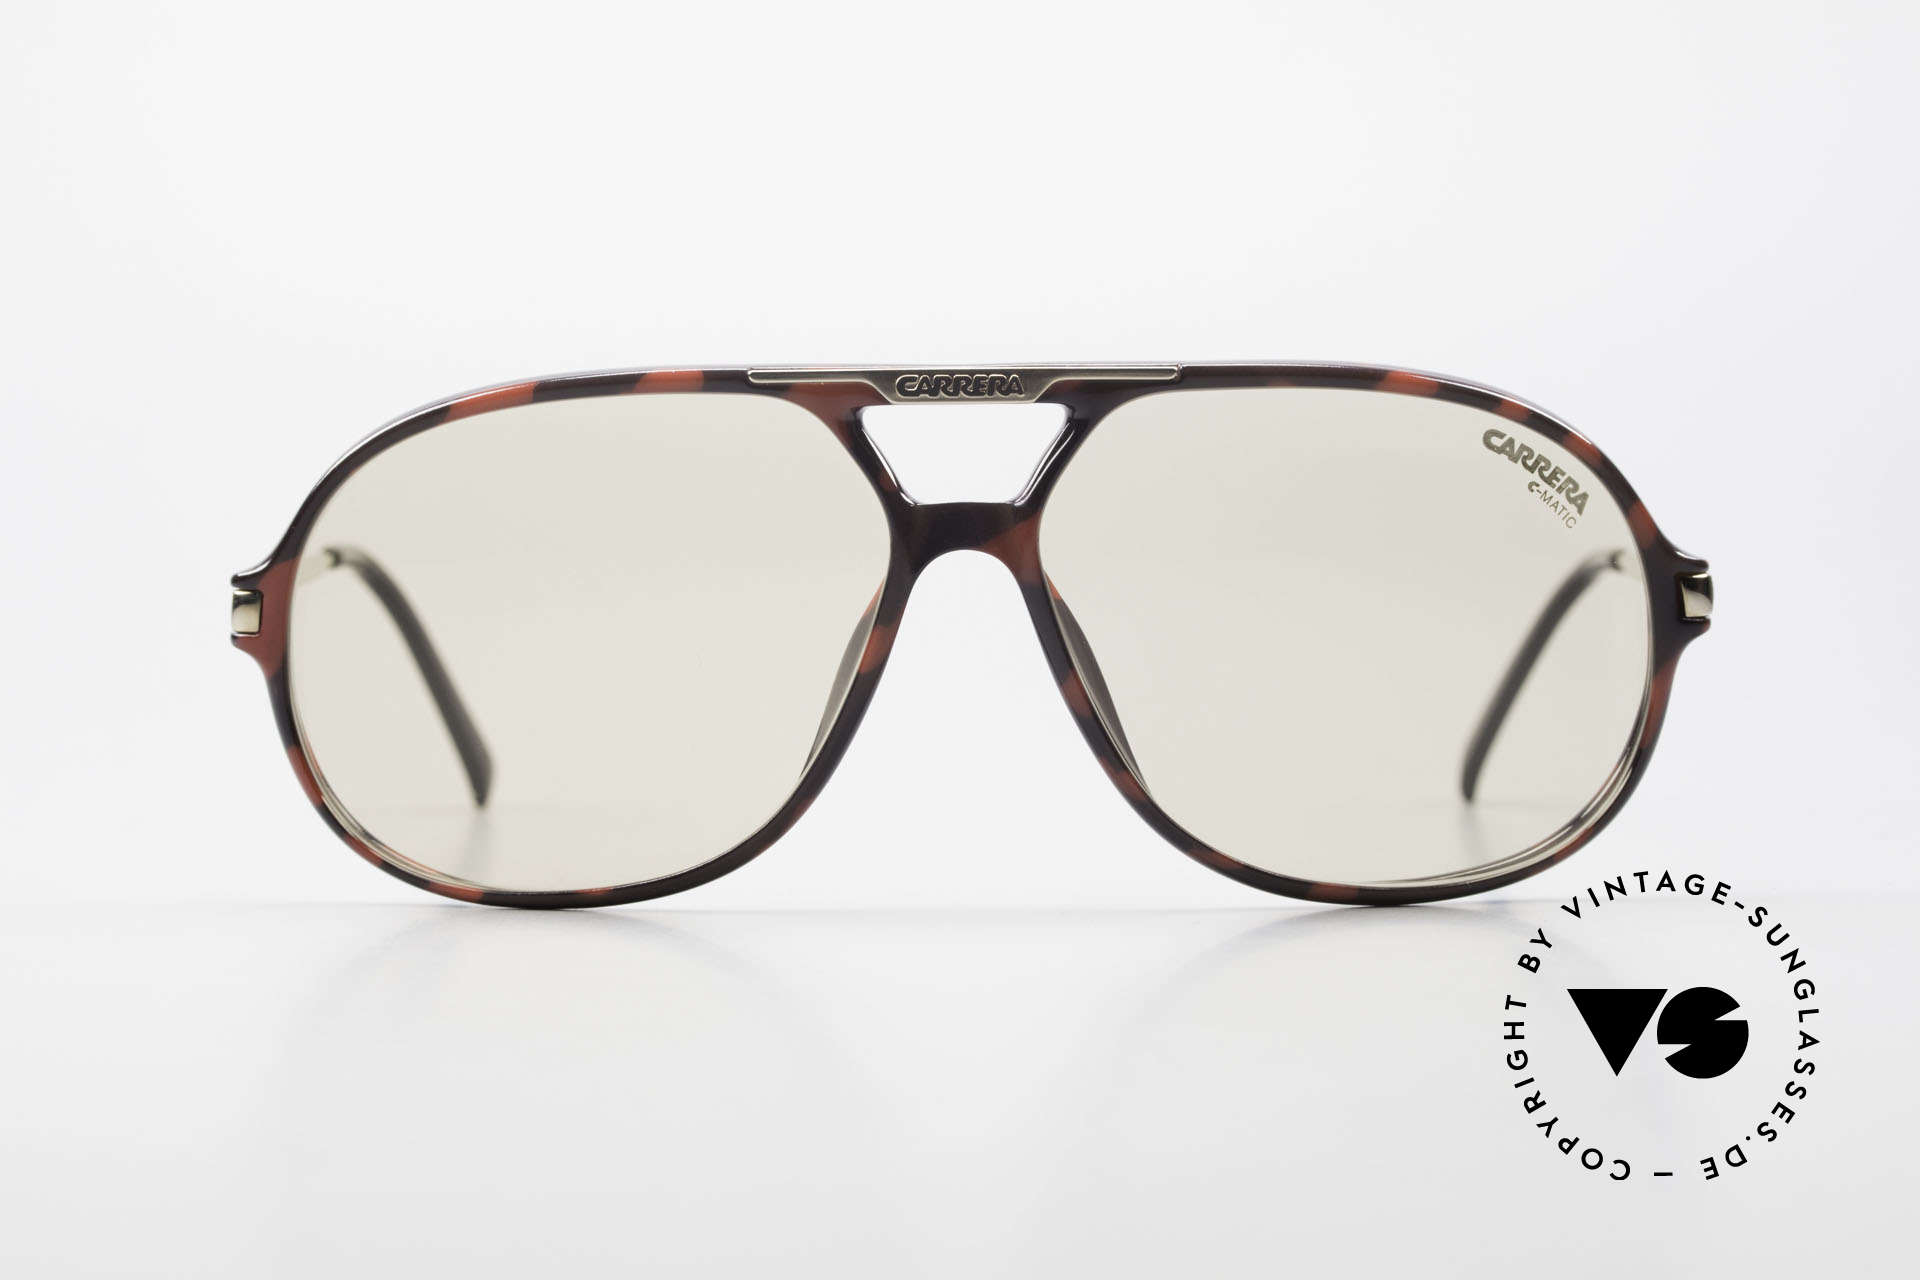 "Carrera 5411 C-Matic Photochromic Automatic Lens, brilliant photochromic ""C-MATIC"" lenses (darkening), Made for Men"